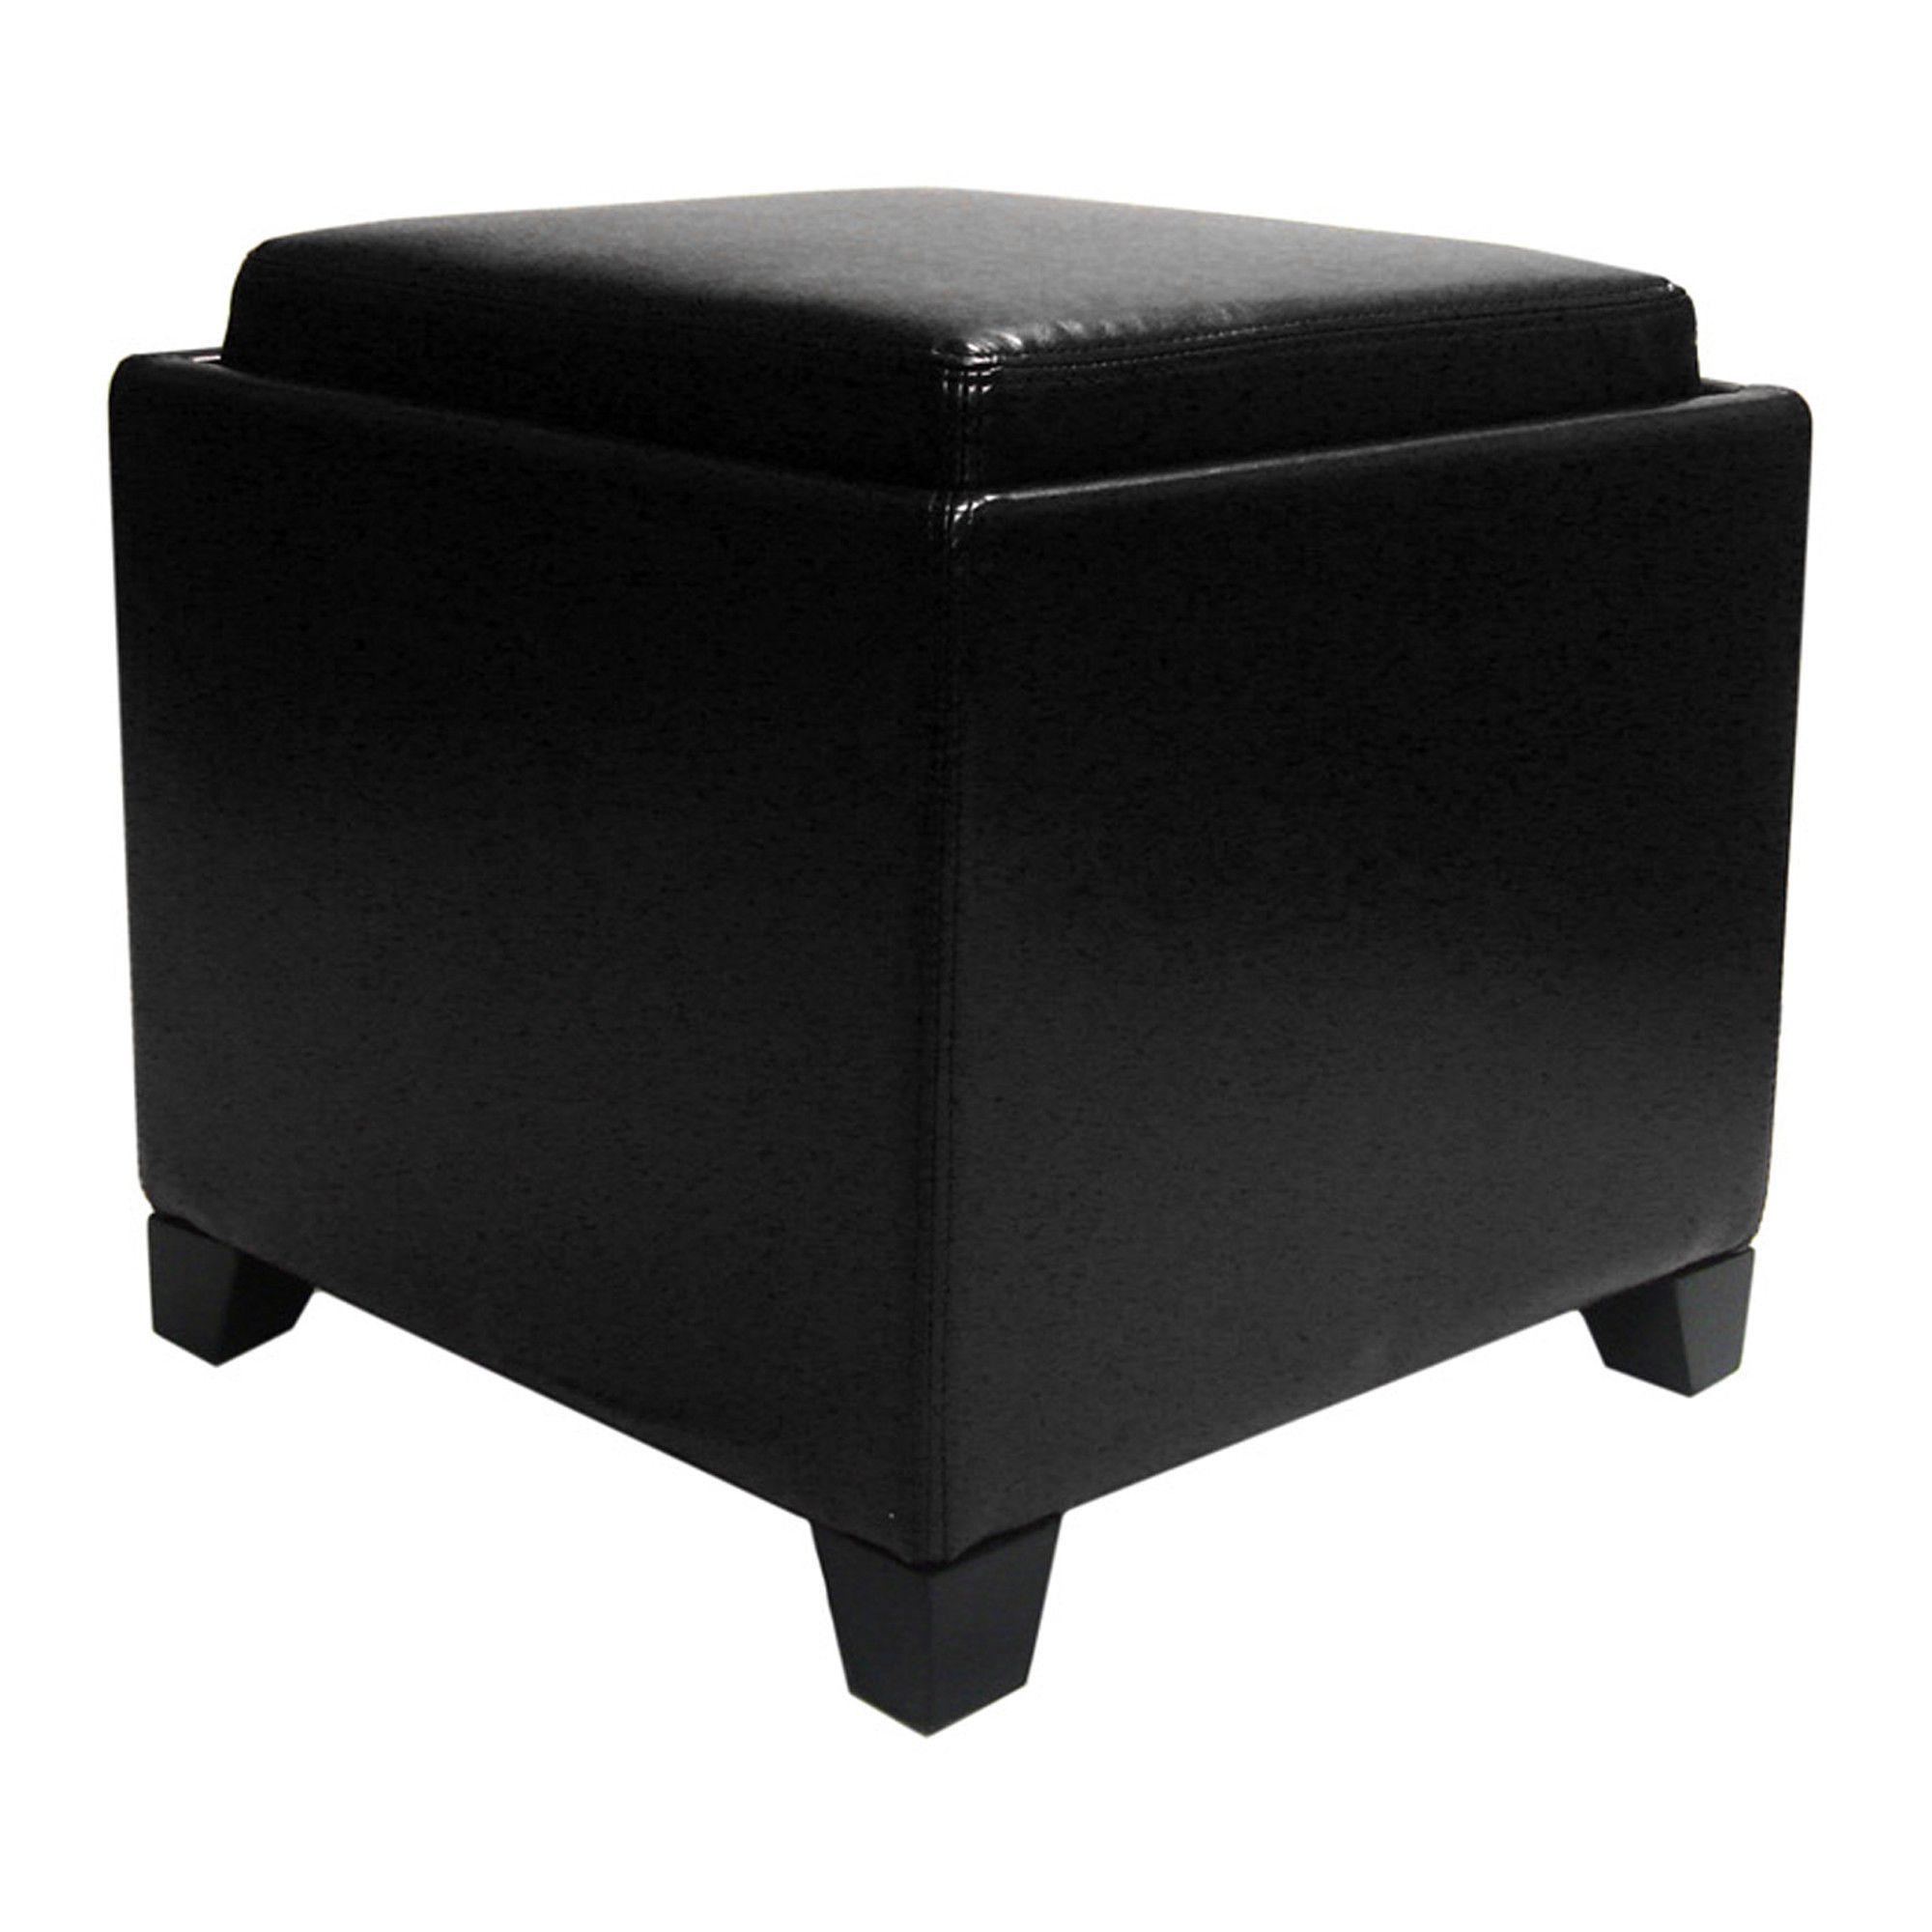 Rainbow Contemporary Storage Ottoman With Tray In Black Bonded